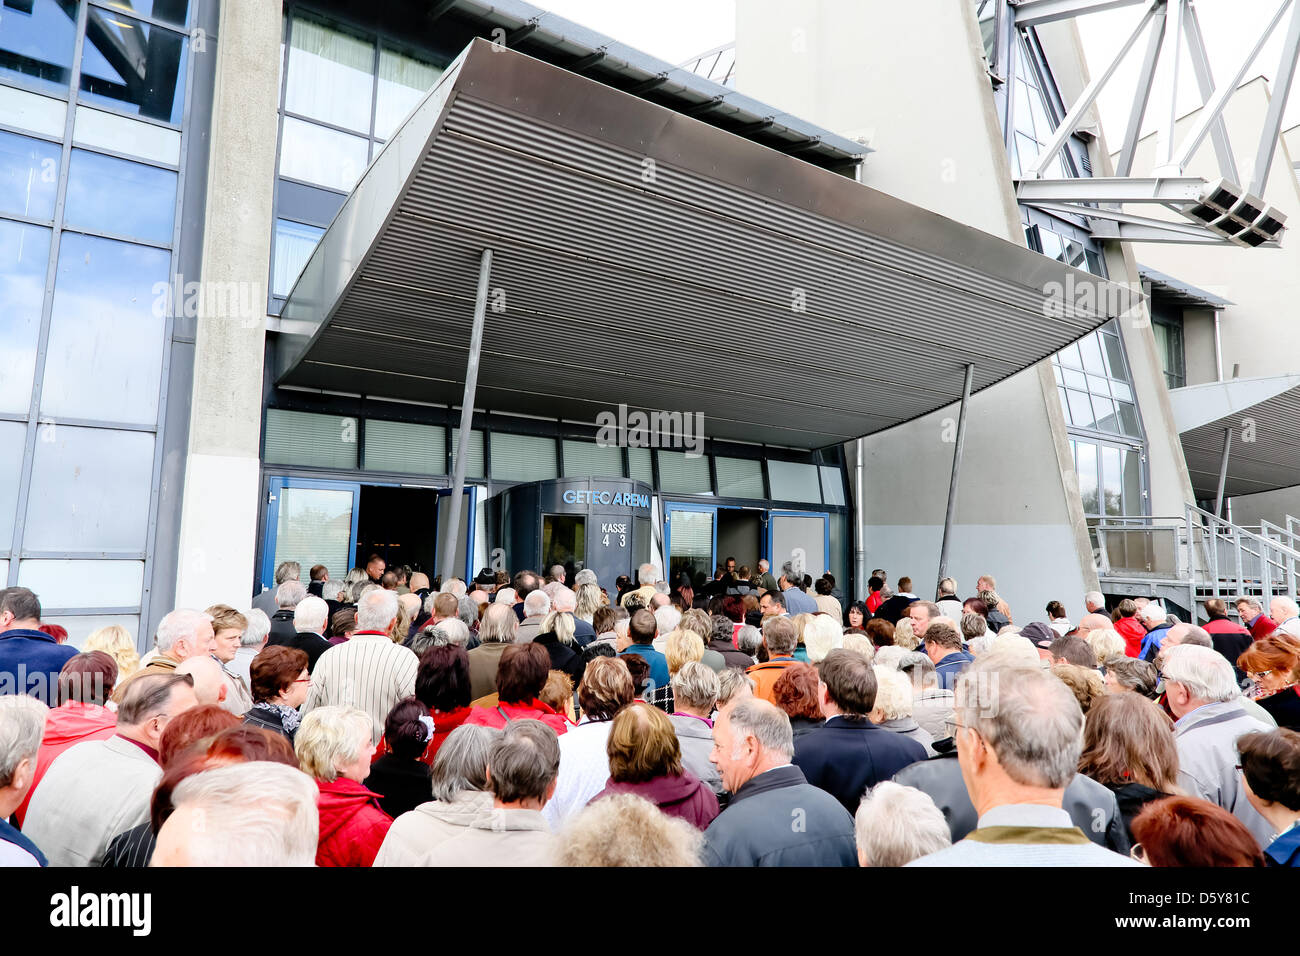 People queue for the folk music parade of the radio station MDR Saxony-Anhalt at GETEC Arena in Magdeburg, Germany, - Stock Image